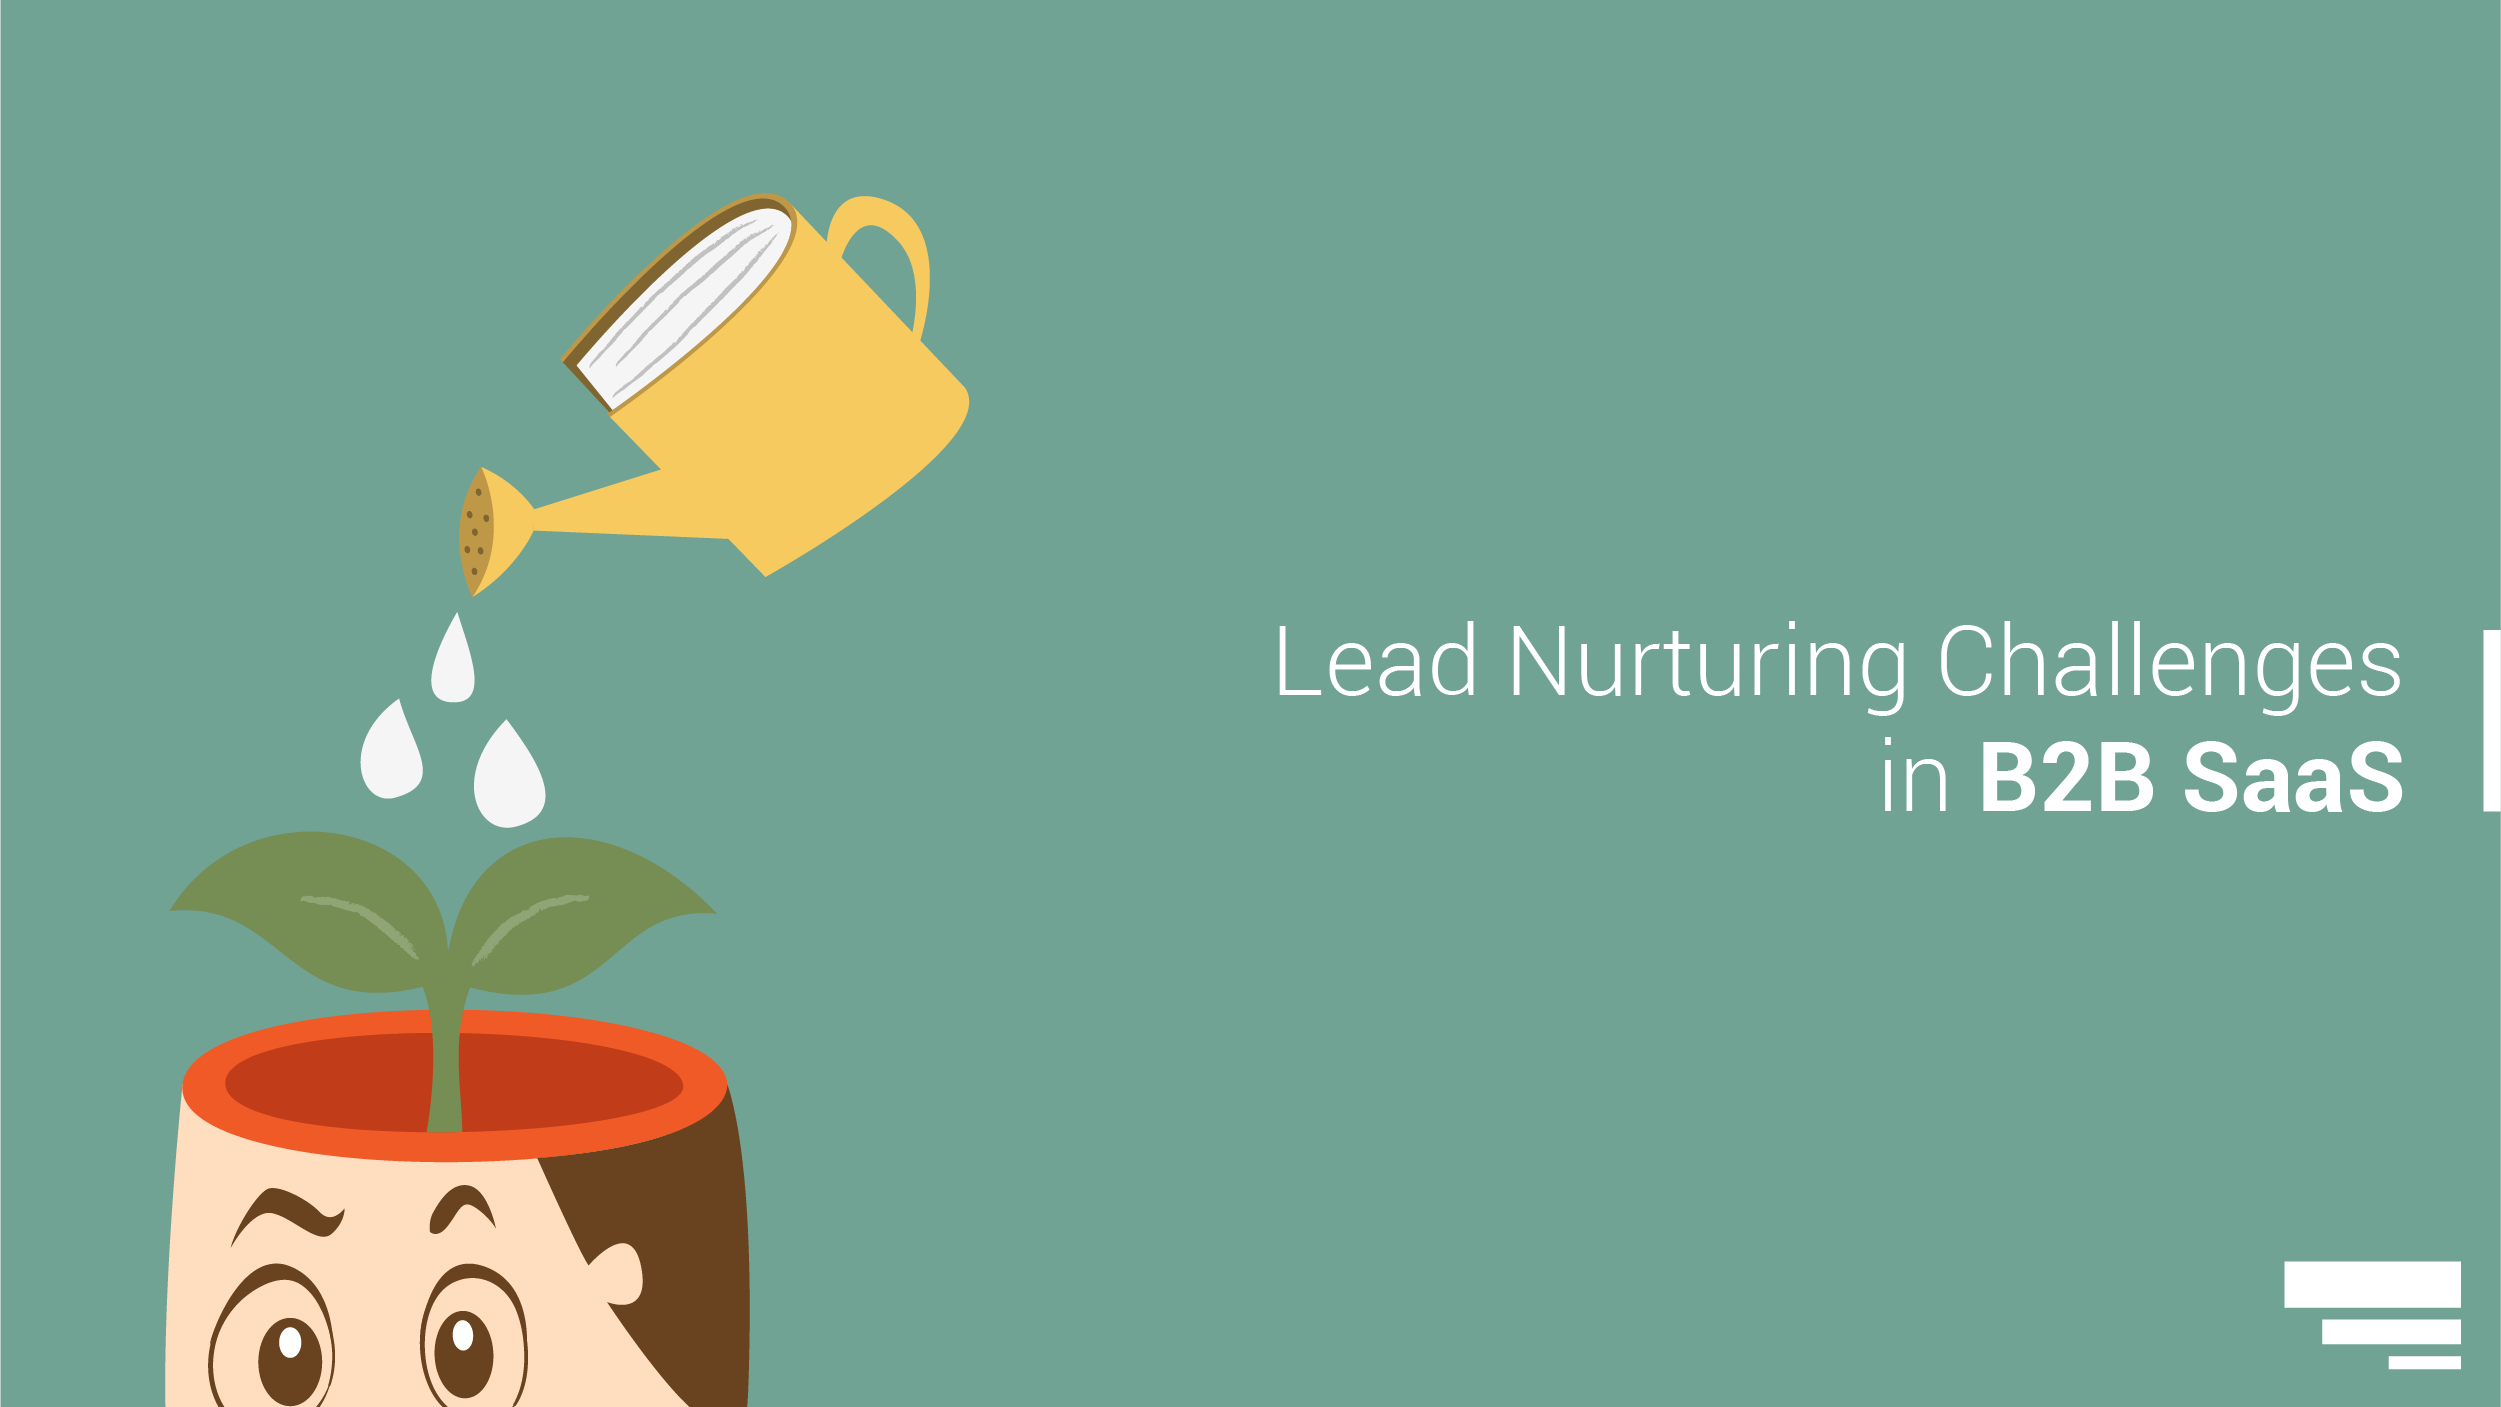 Lead Nurturing Challenges in B2B SaaS